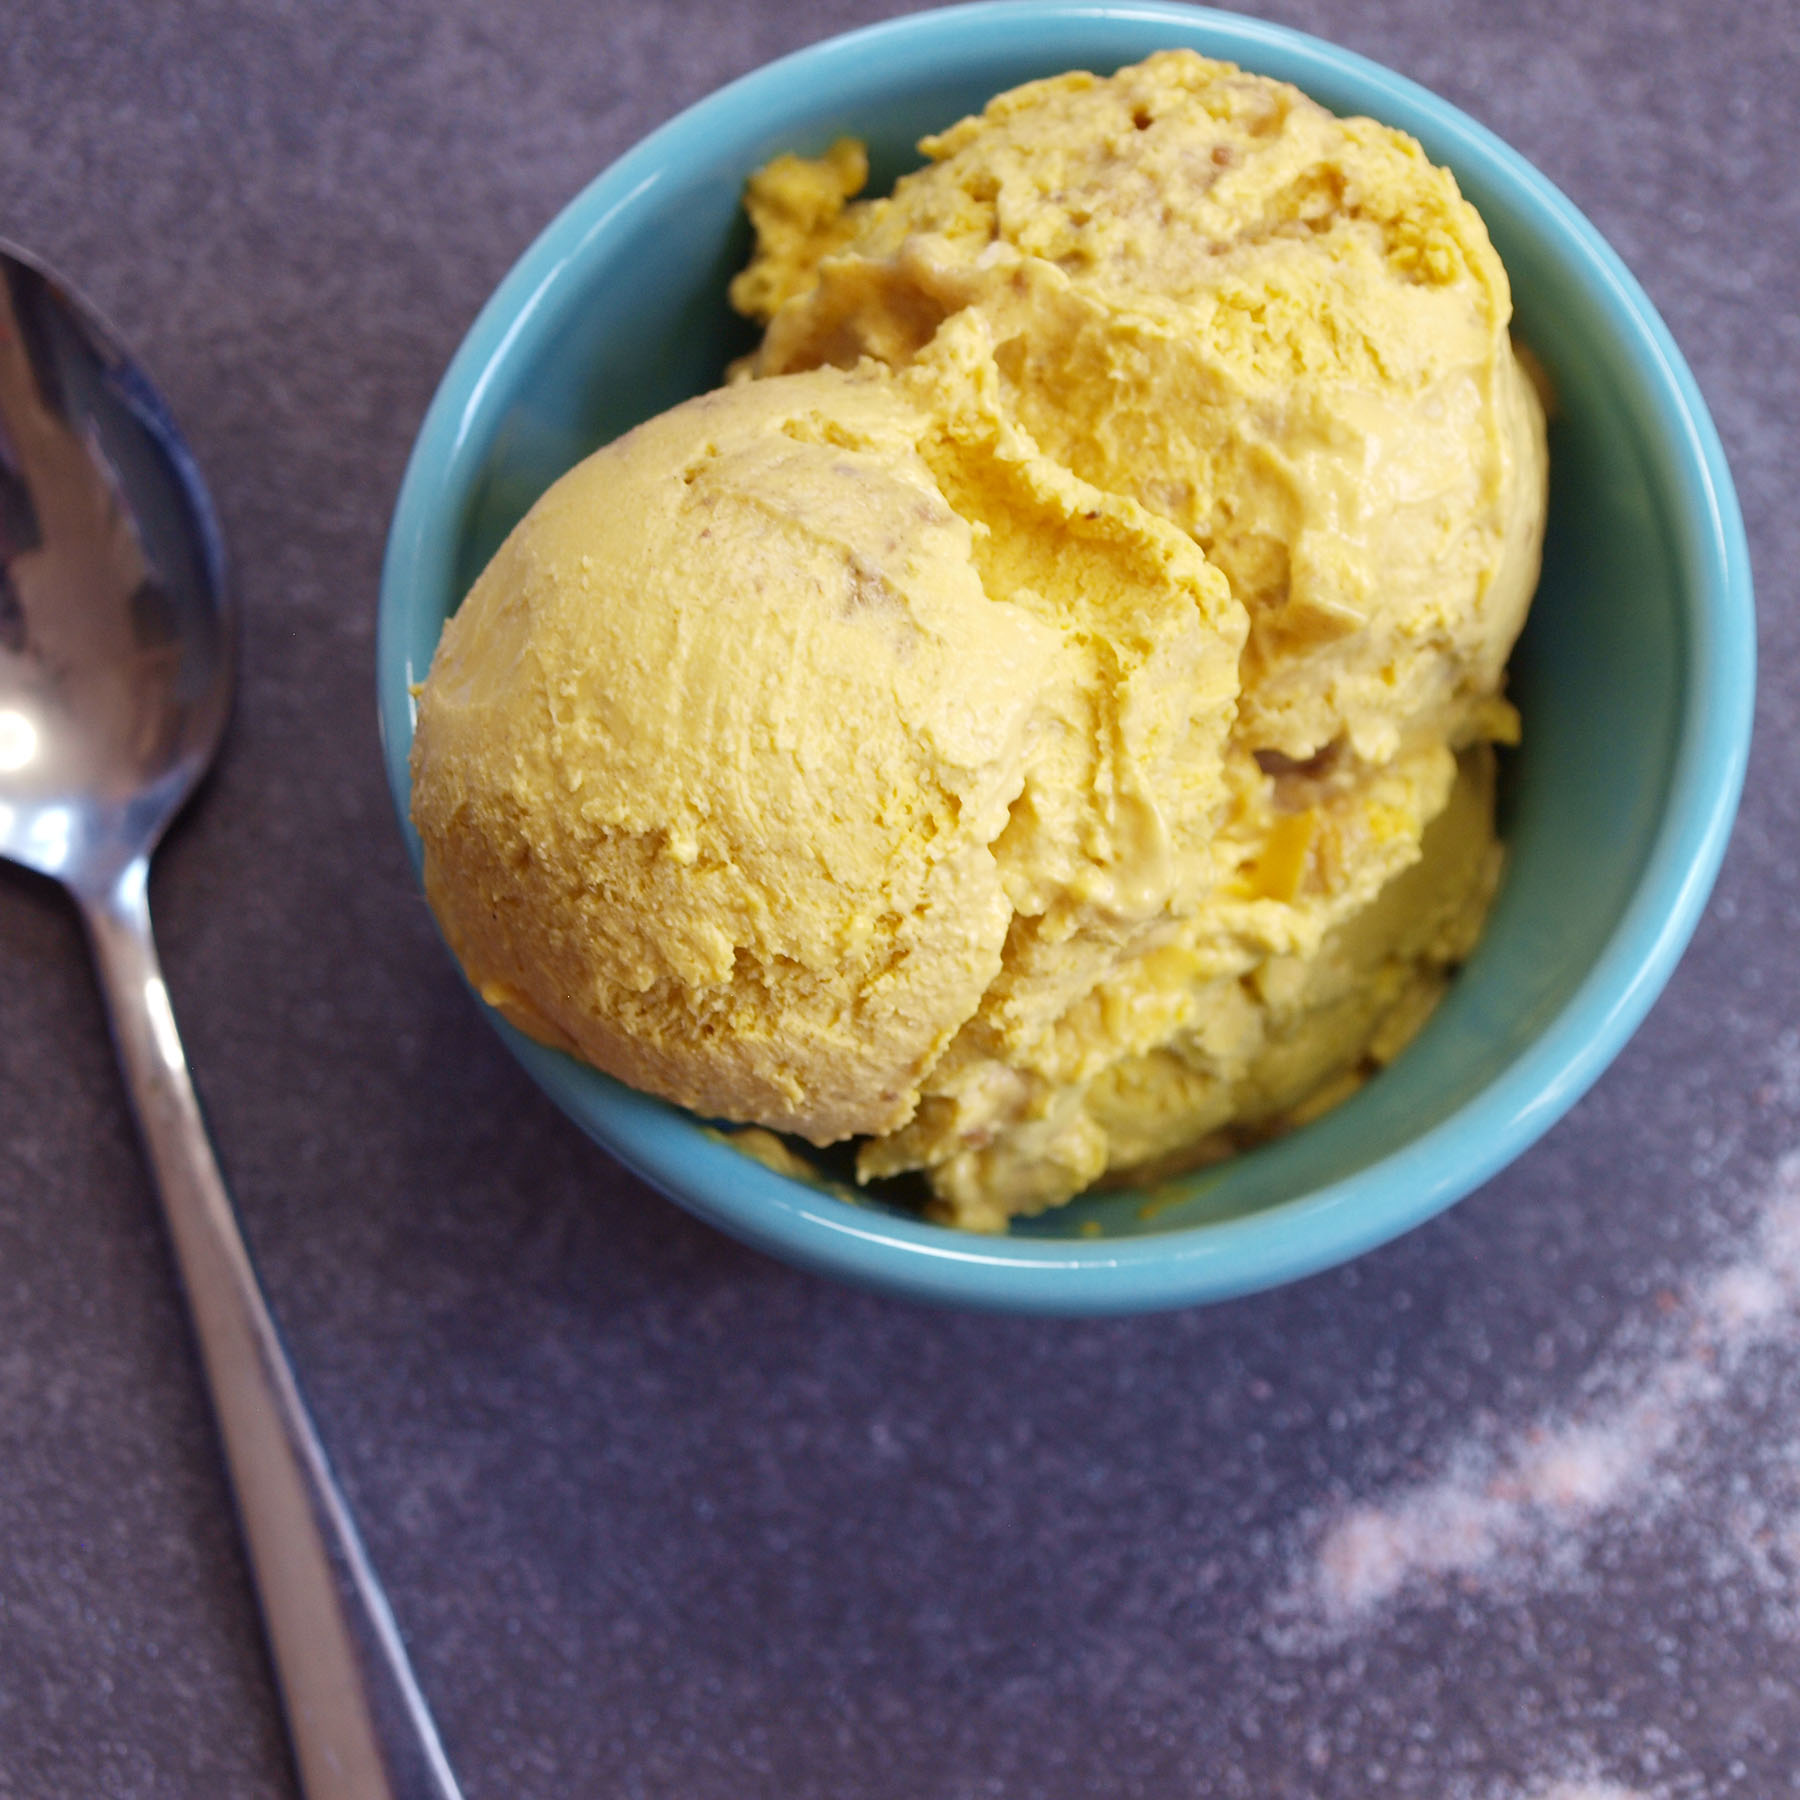 Vegan Sea Salt Caramel Ice Cream